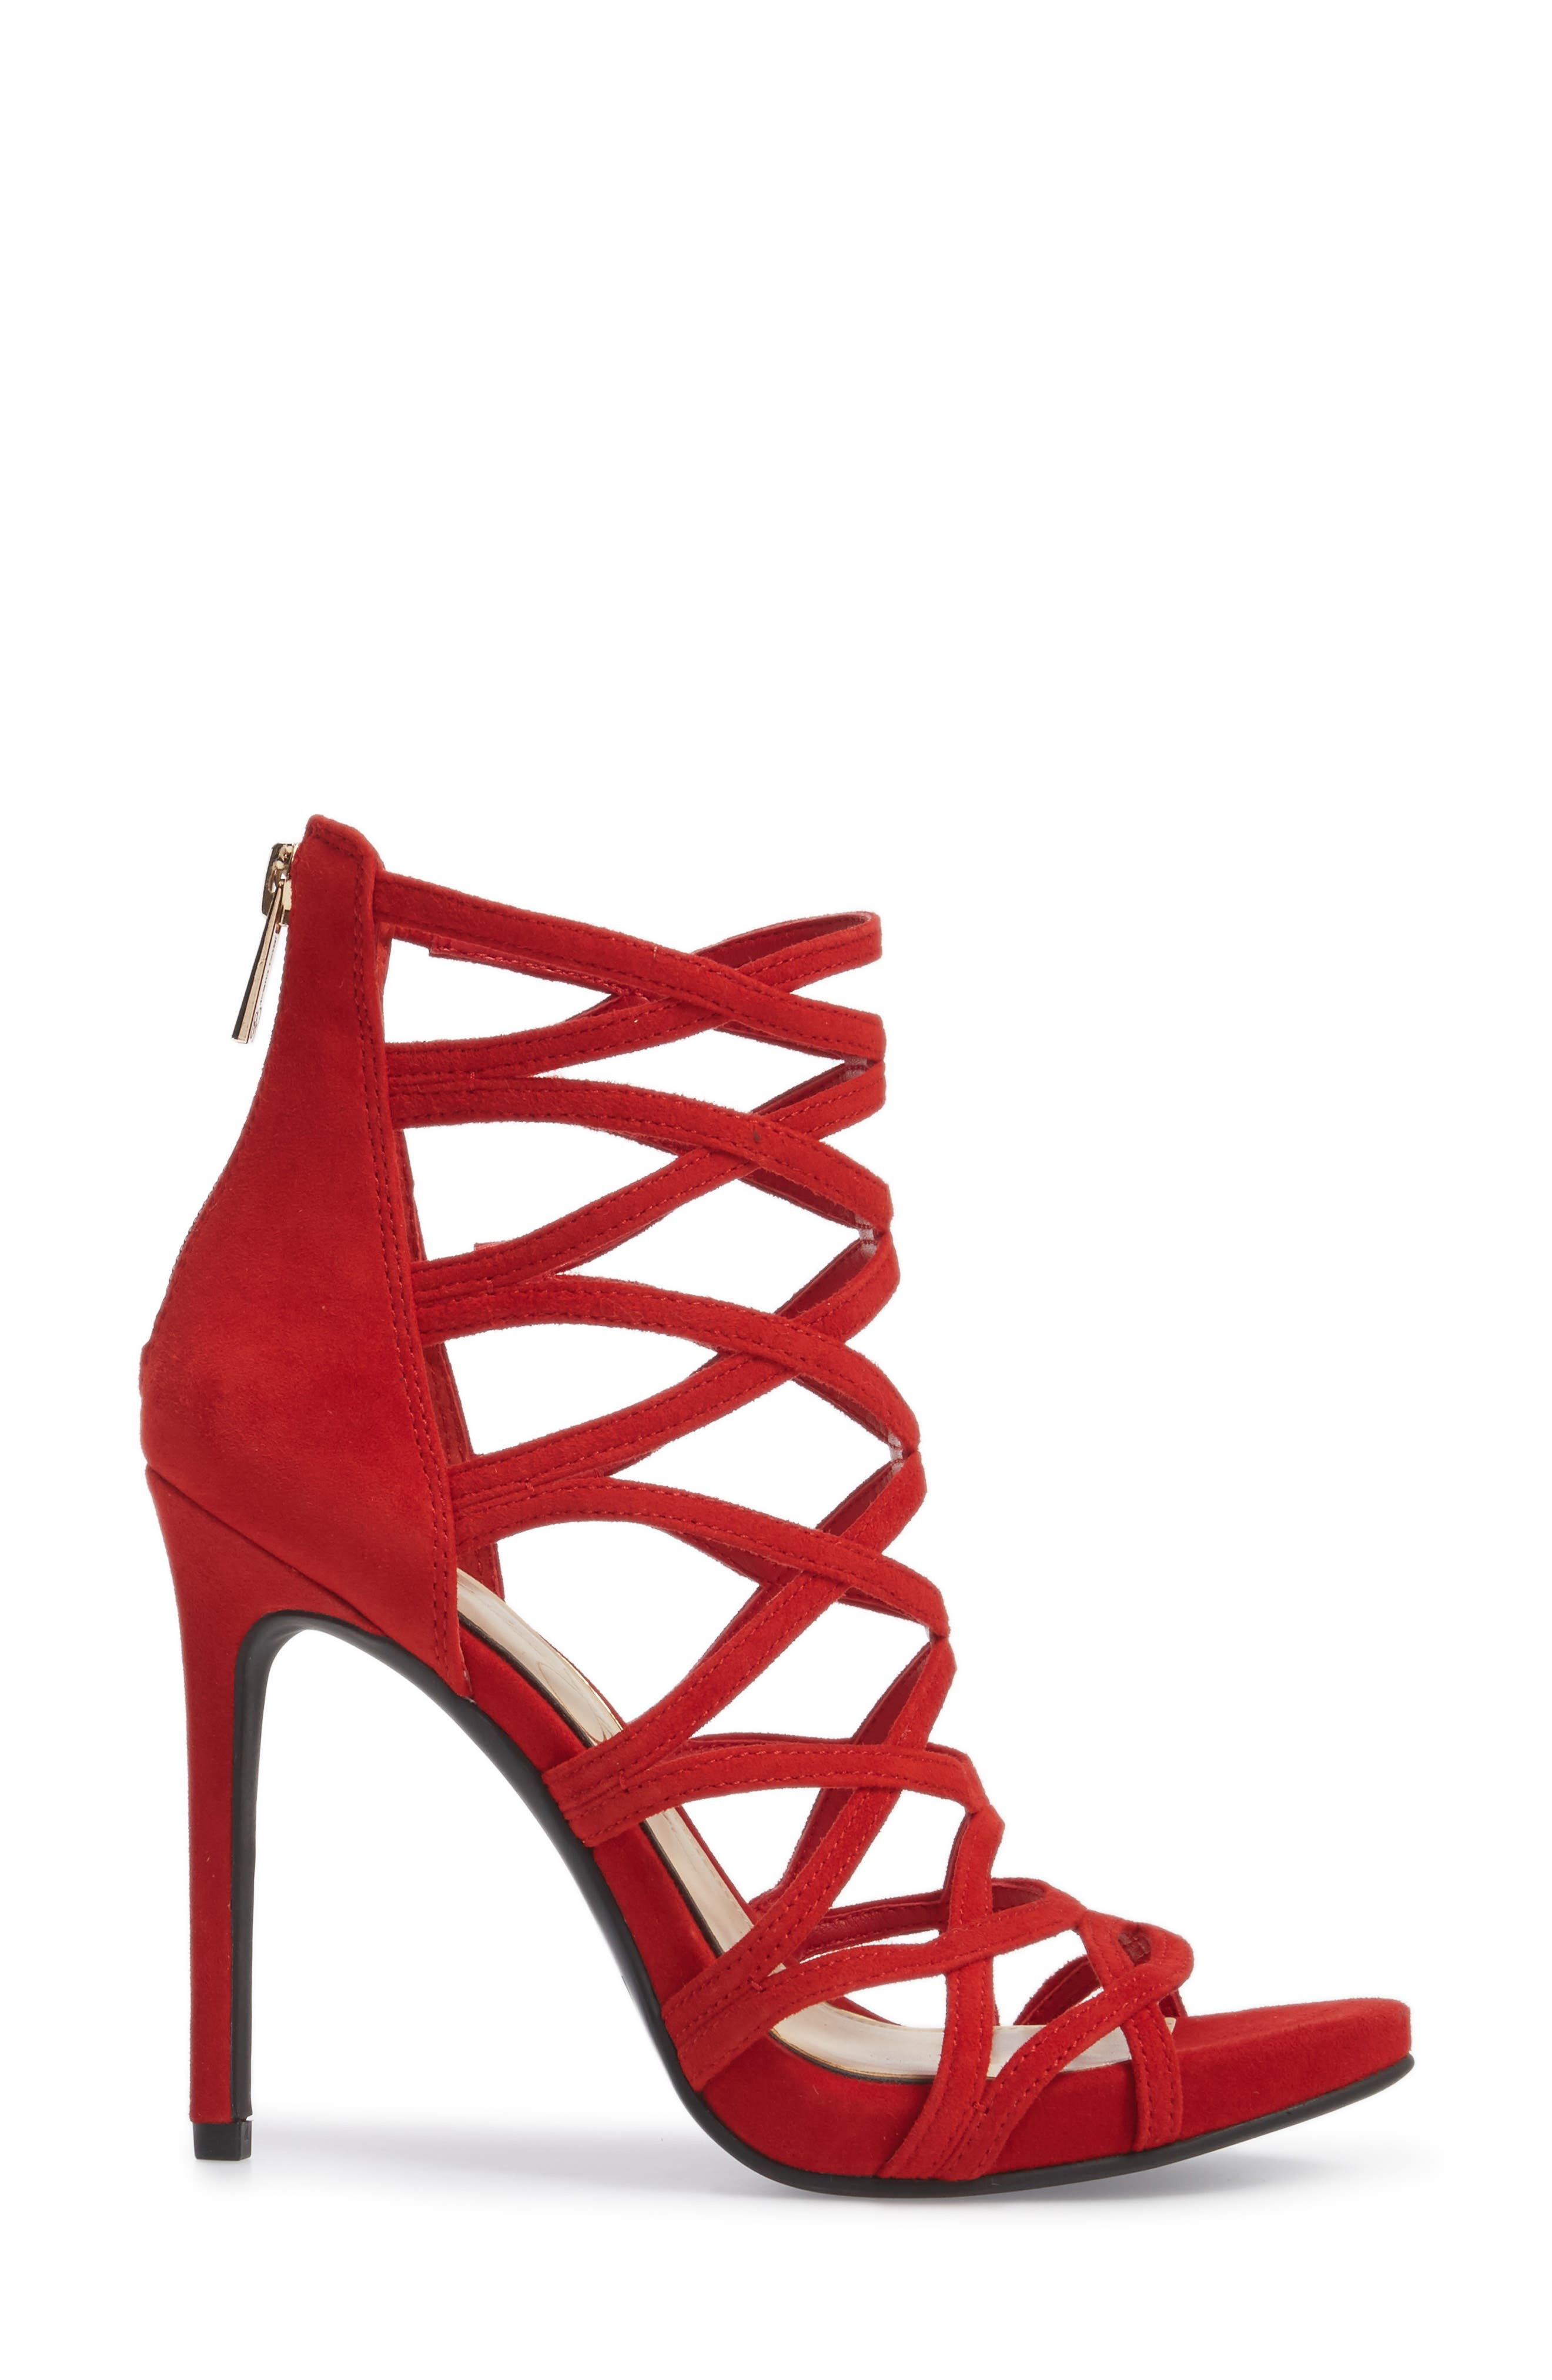 Razella Cage Sandal,                             Alternate thumbnail 3, color,                             Red Muse Suede